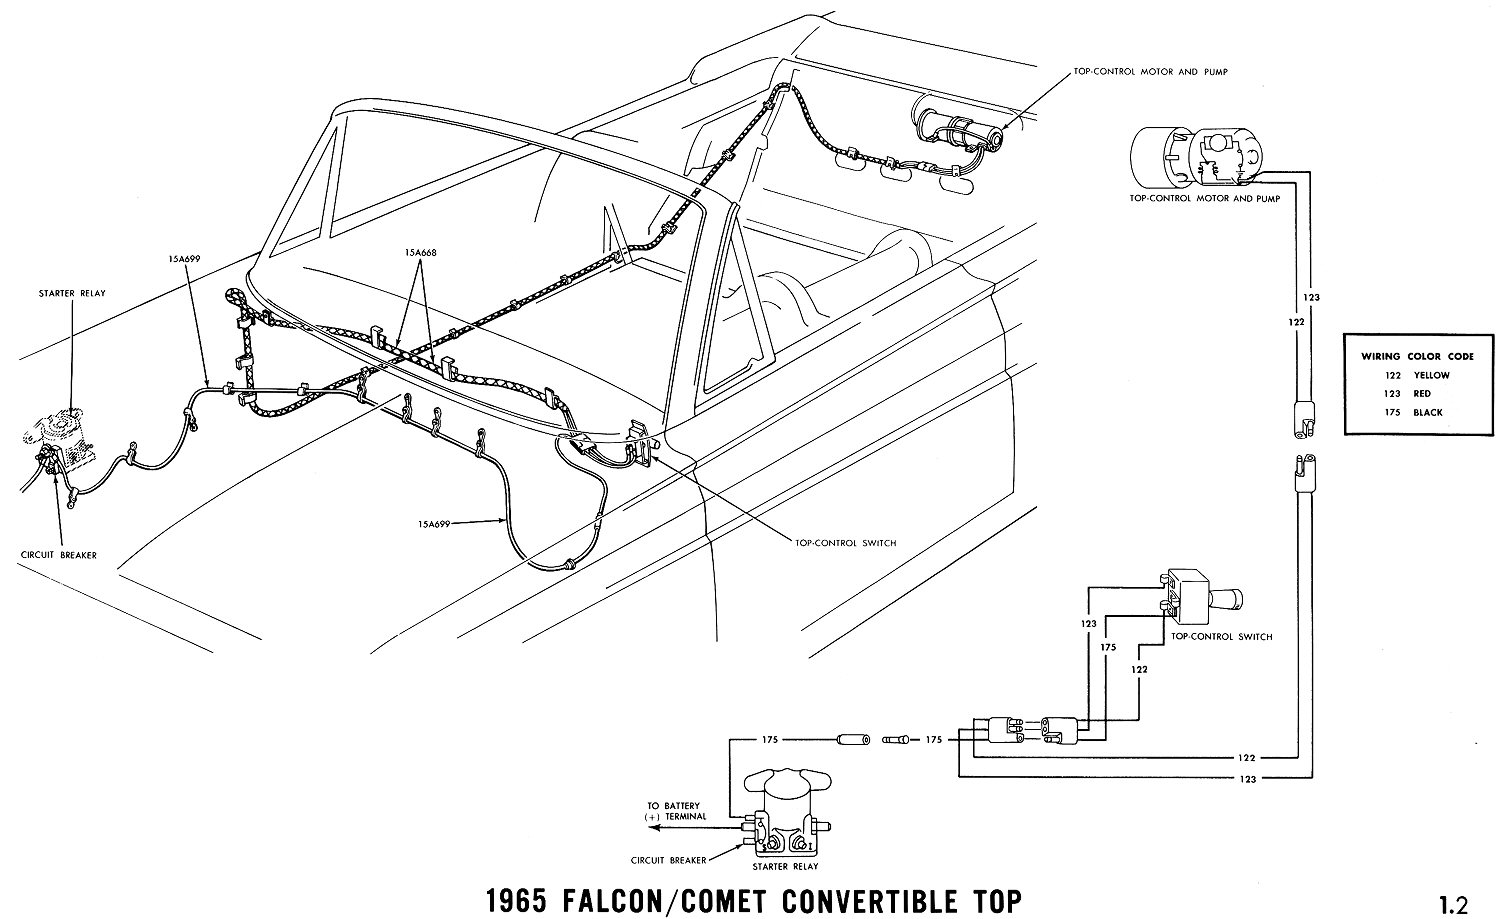 644150 How I Put 5 Gauge Pod Aftermarket Gauges My 1965 Fastback likewise 1966 Mustang Convertible Top Frame Diagram besides Photo 01 in addition 1967 Chevy Impala Parts Catalog as well 1964 Mustang Wiring Diagrams. on 1969 ford galaxie wiring diagram